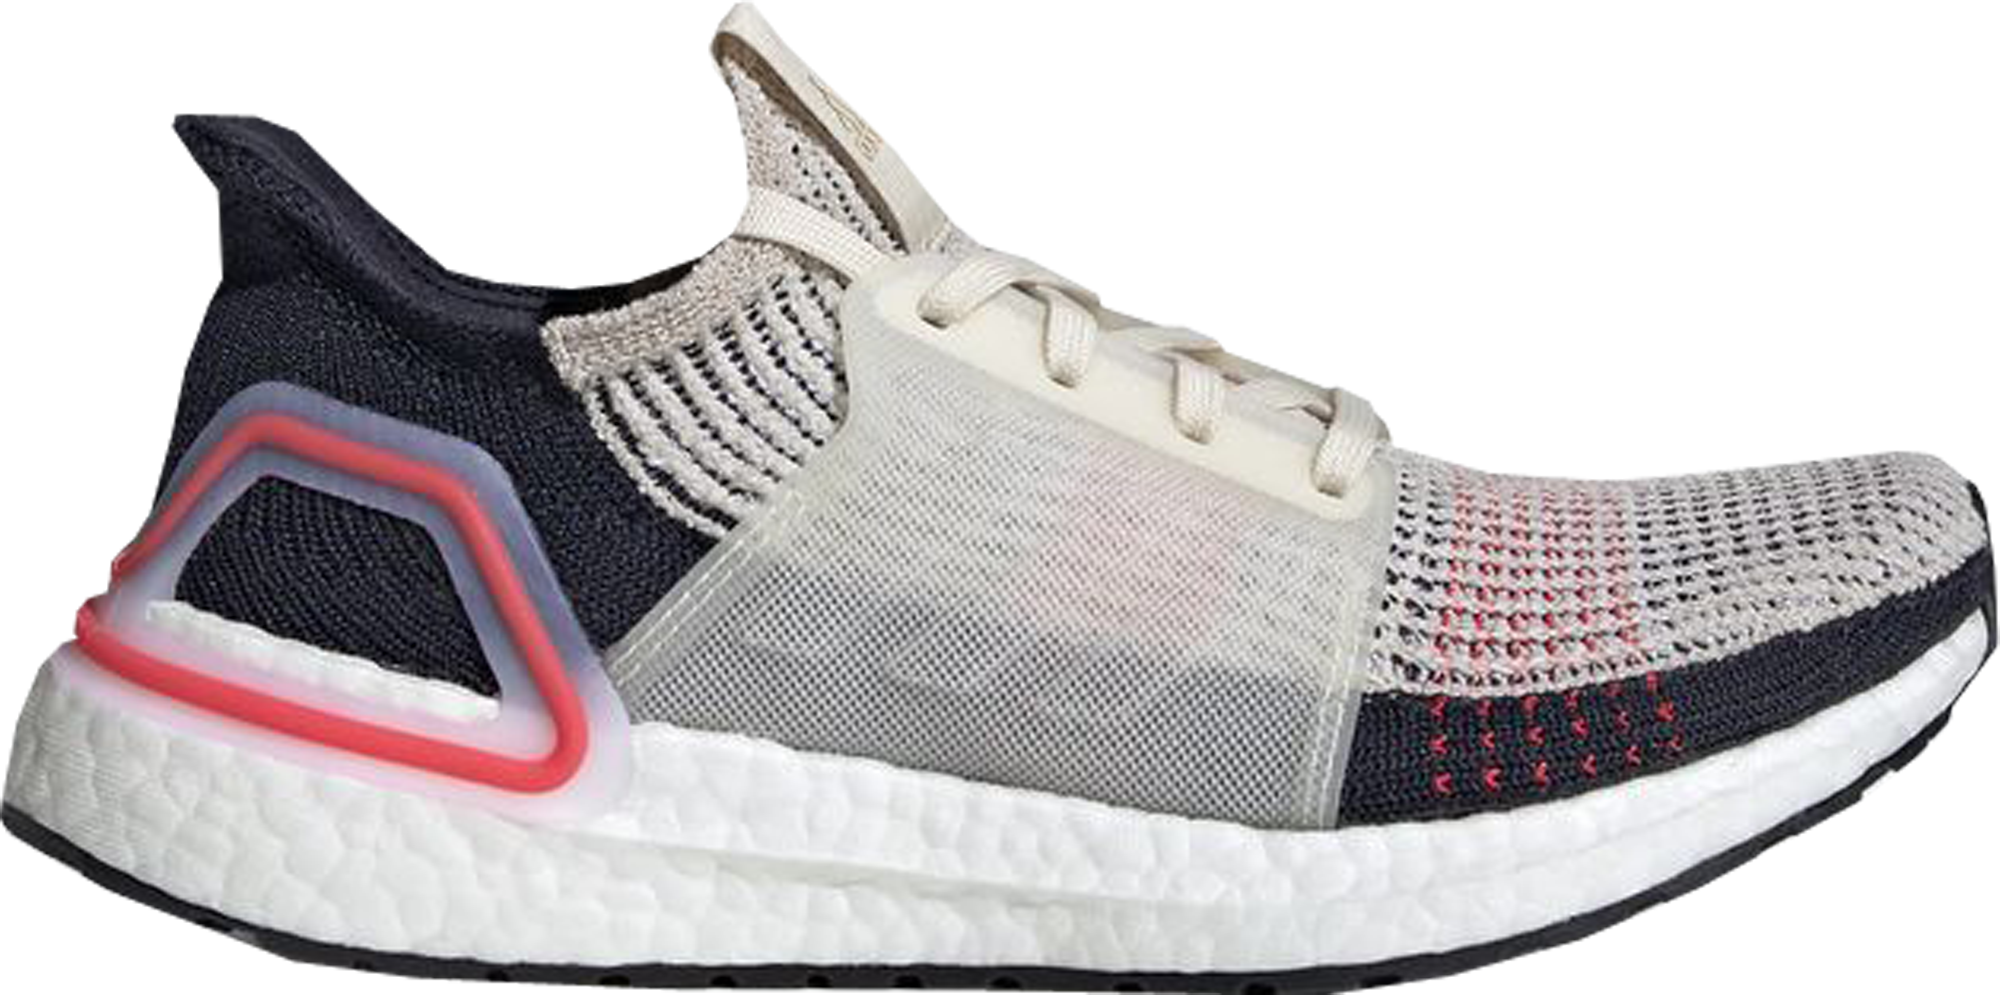 adidas Ultra Boost 2019 Clear Brown Chalk White (W)